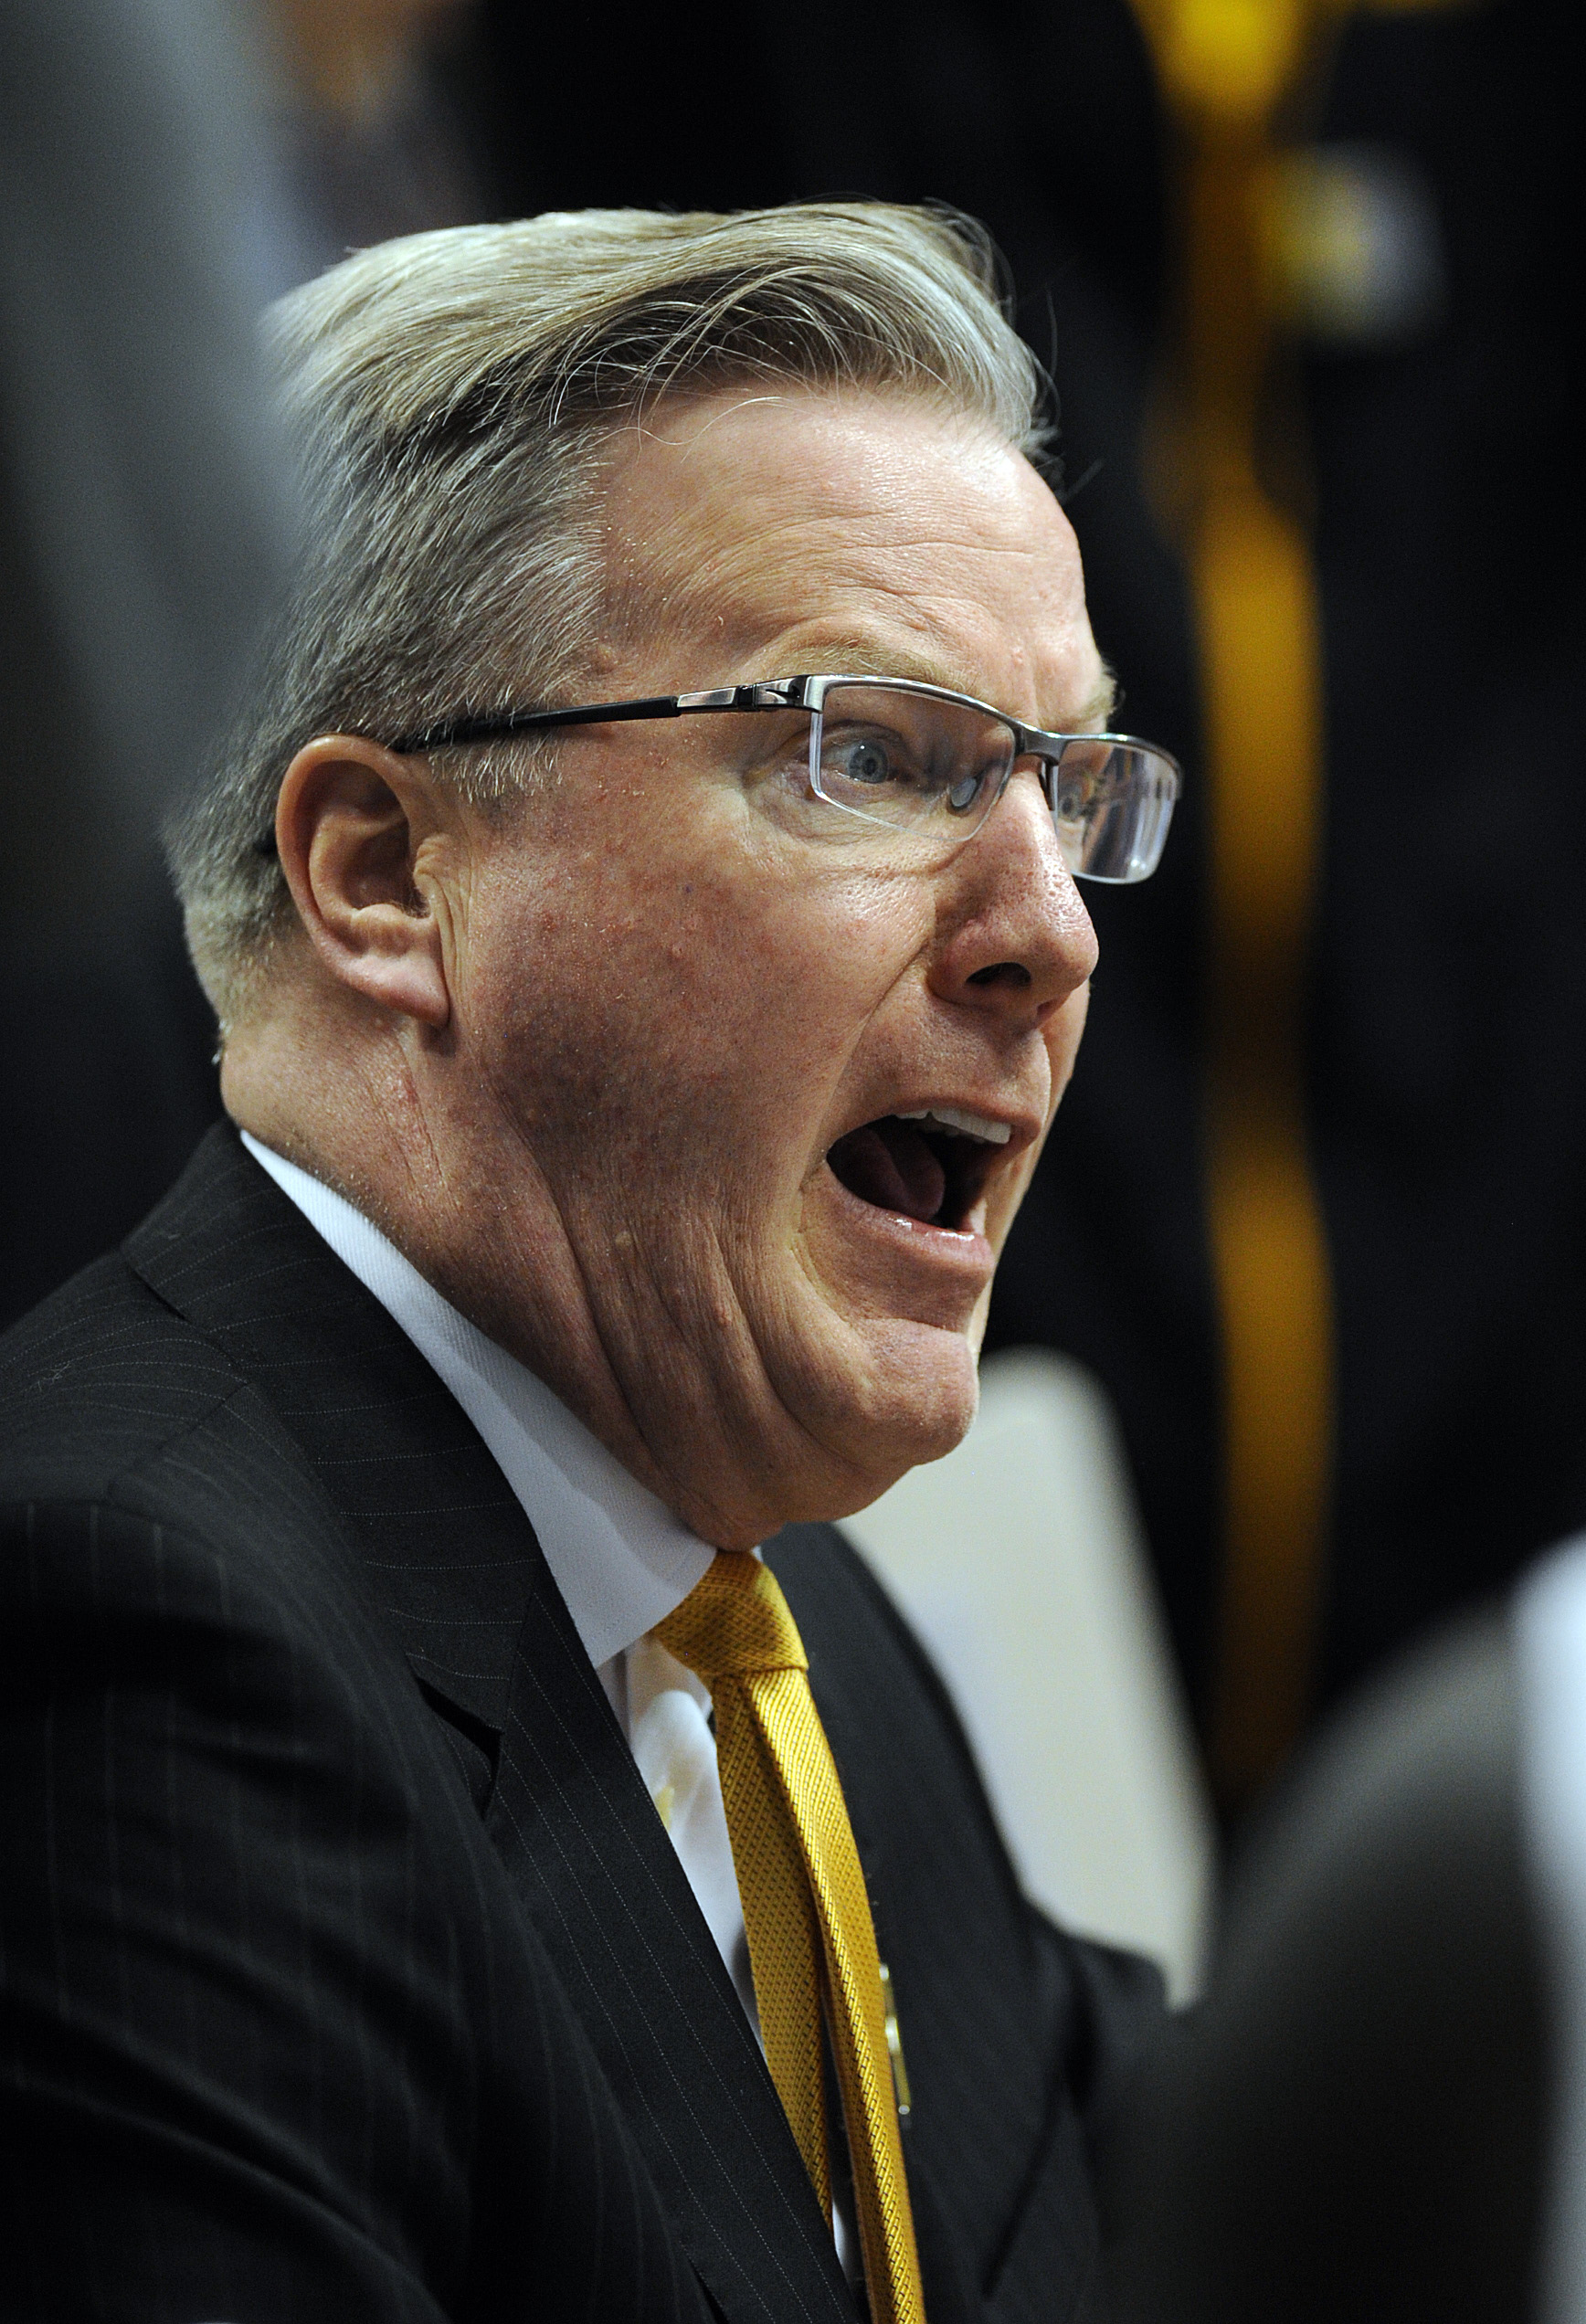 Mar 10, 2016; Indianapolis, IN, USA; Iowa Hawkeyes head coach Fran McCaffery yells at his players in a huddle during a first half timeout against the Illinois Fighting Illini during the Big Ten Conference tournament at Bankers Life Fieldhouse. Mandatory Credit: Thomas Joseph-USA TODAY Sports